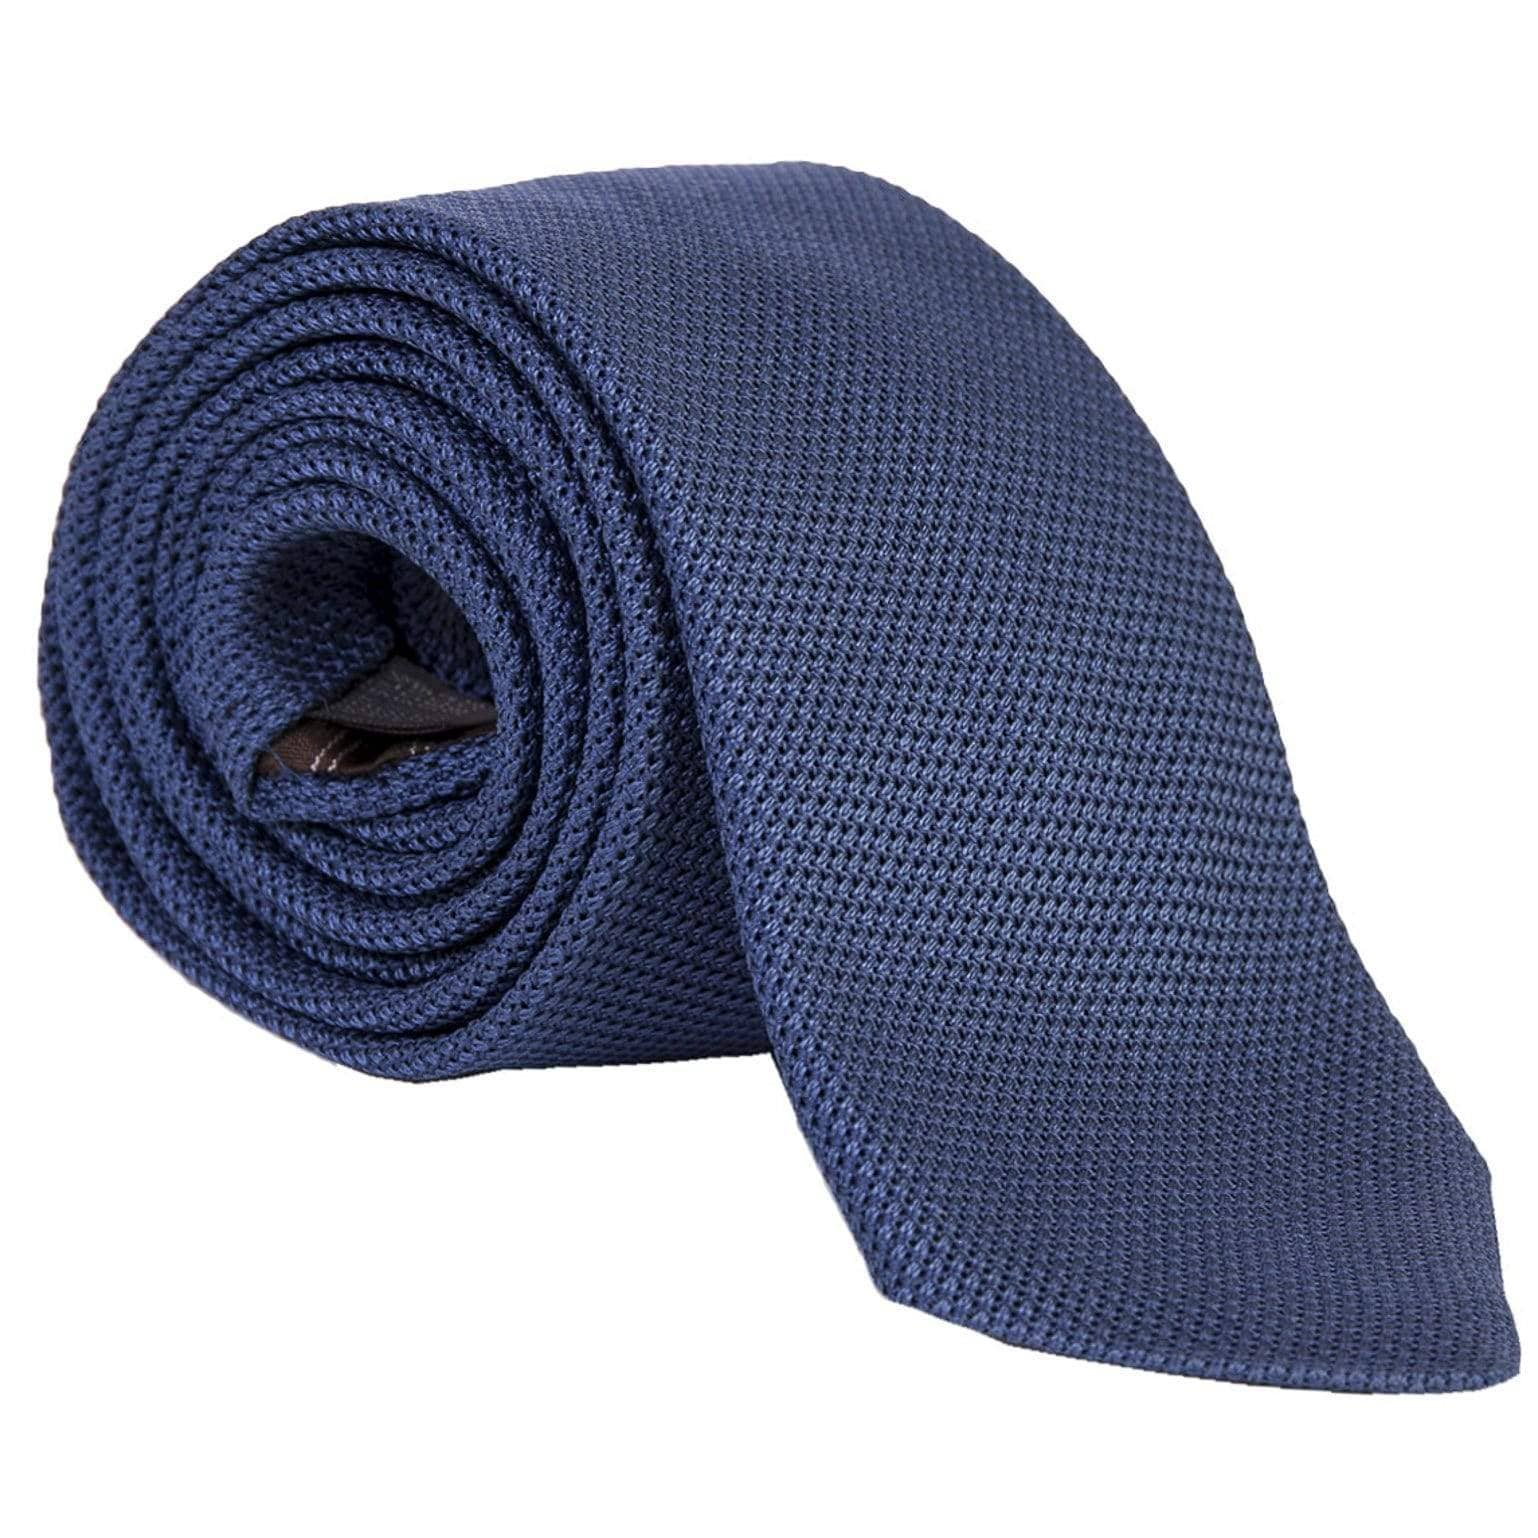 silk grenadine tie solid navy blue